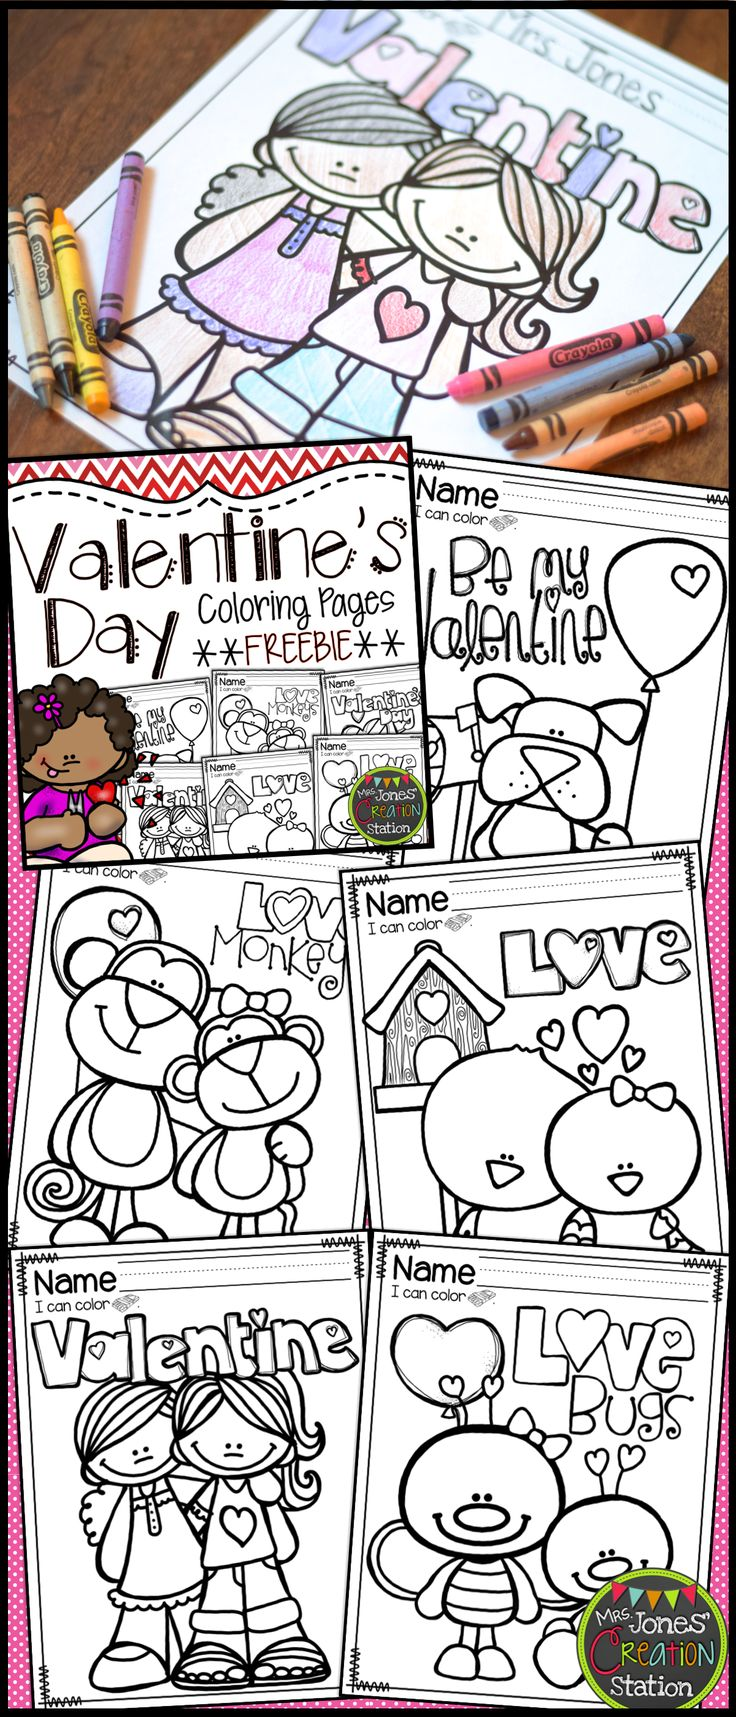 Coloring activities speech therapy - Valentine S Day Coloring Pages Freebie Mrs Jones Creation Station